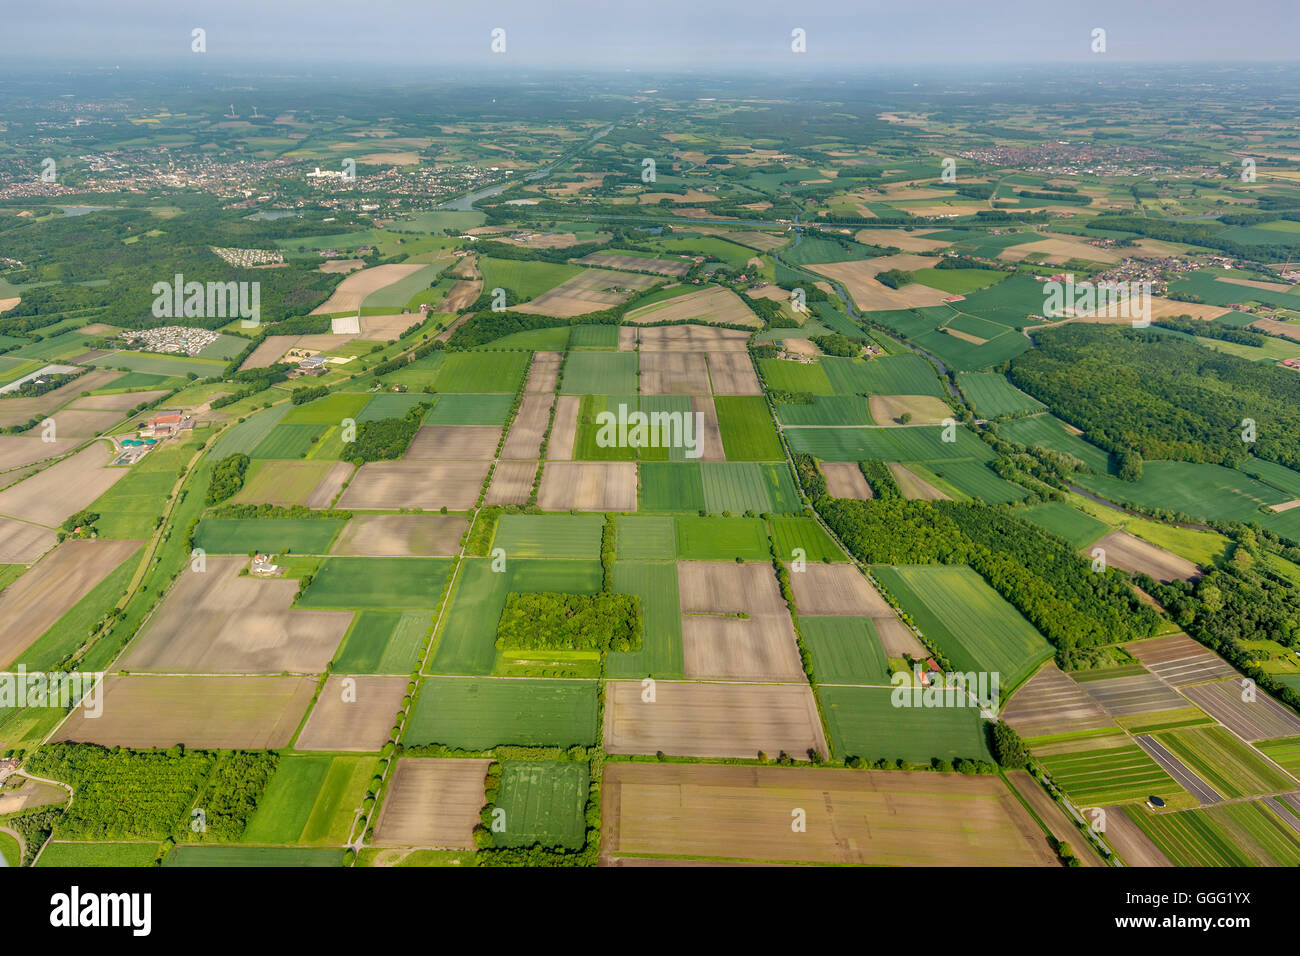 Aerial view, site newPark northeast of town Datteln, fields, meadows, farmland, agriculture, aerial view of Datteln, - Stock Image